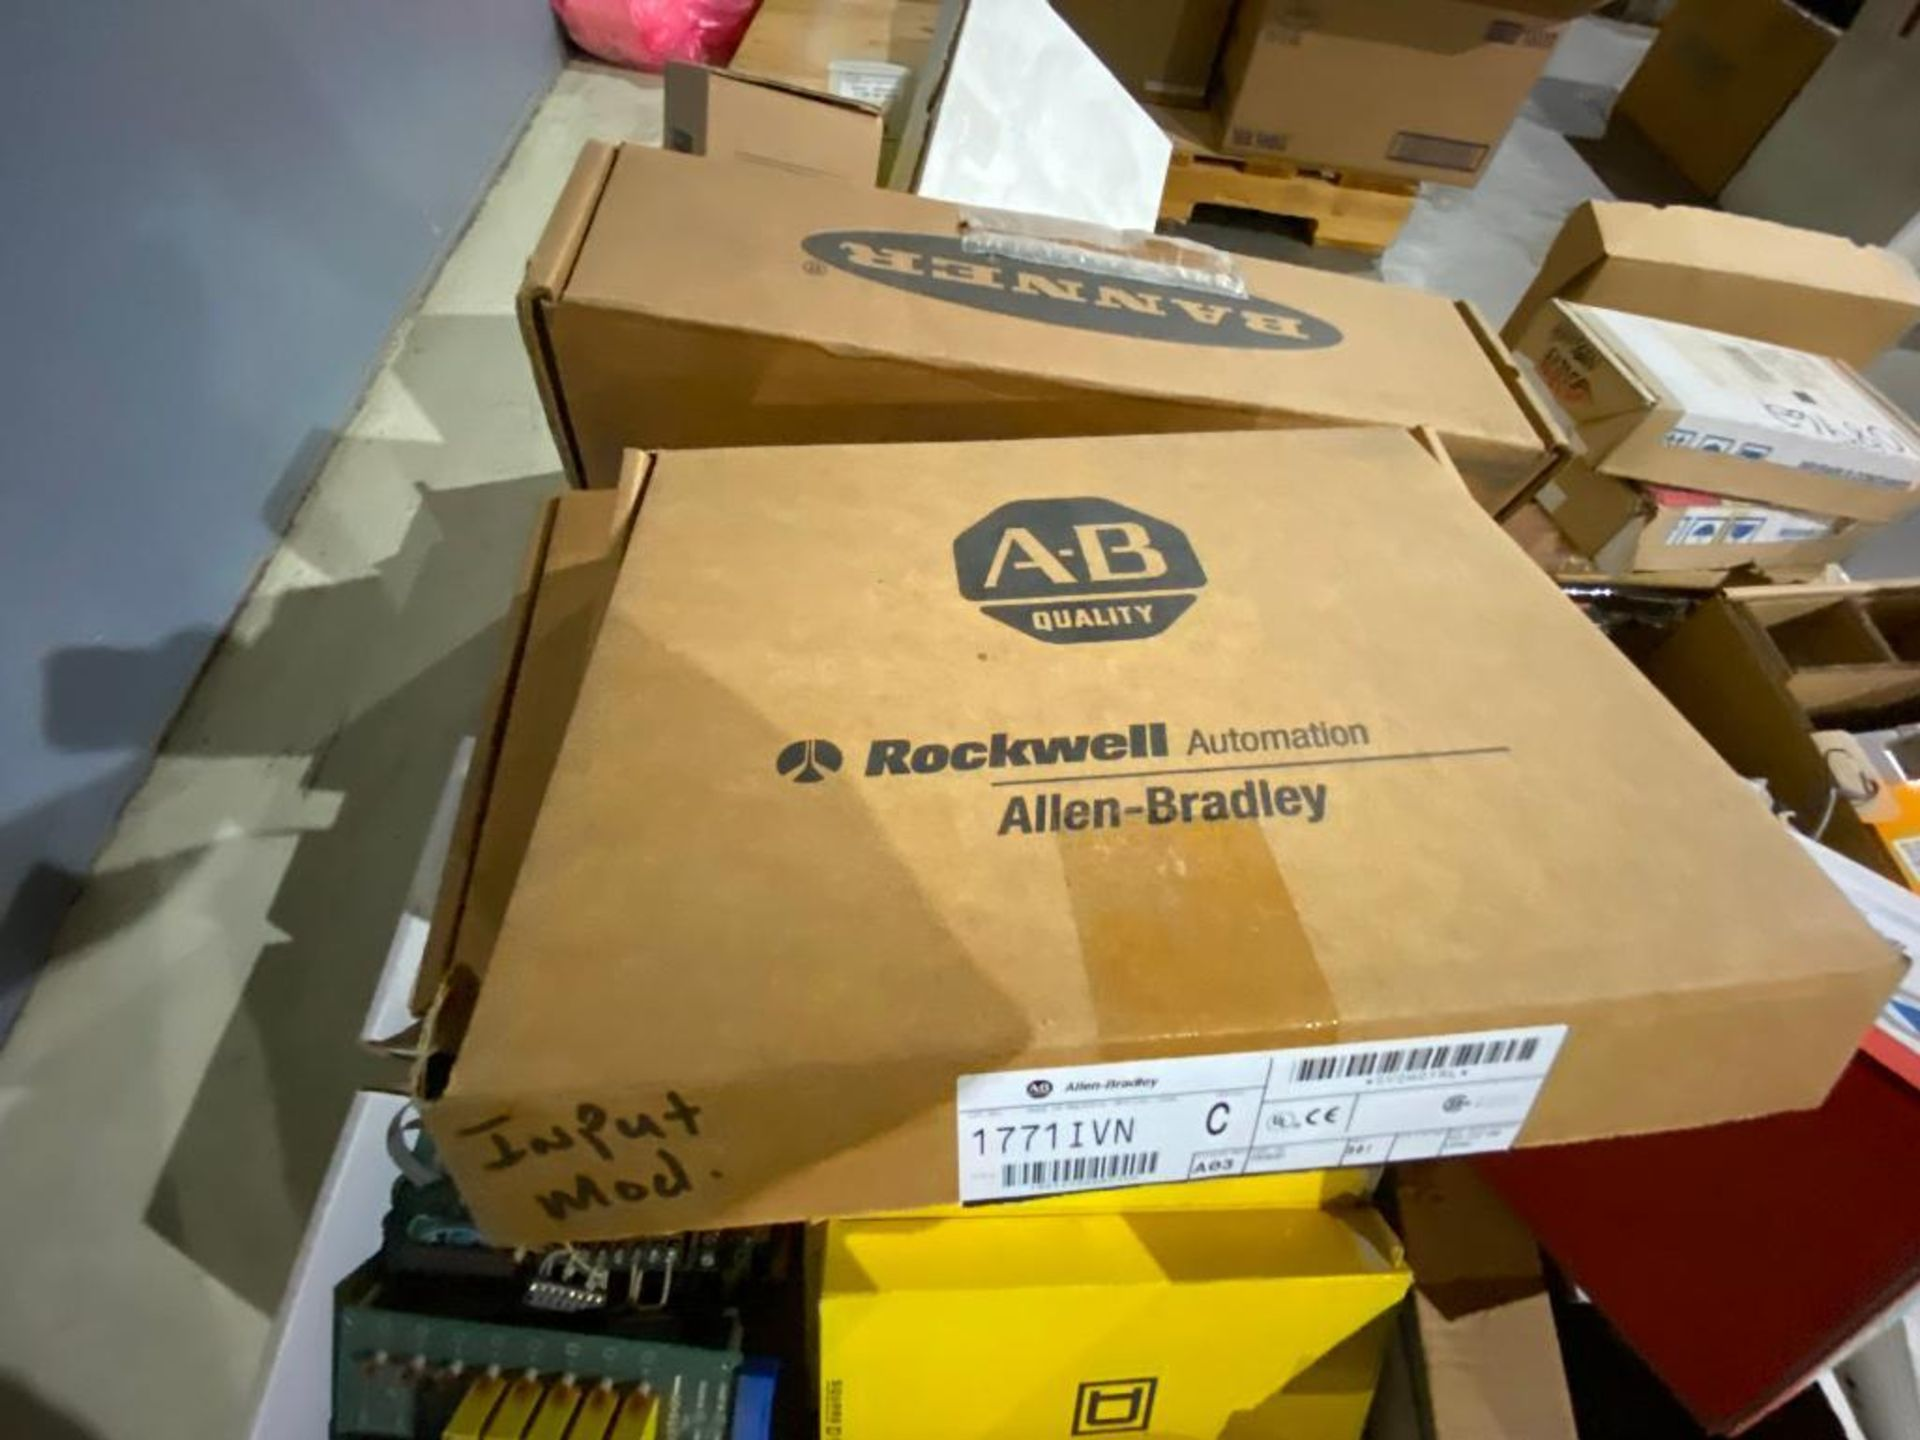 pallet of ABB parts, controllers, cabinets, and control boards - Image 5 of 8